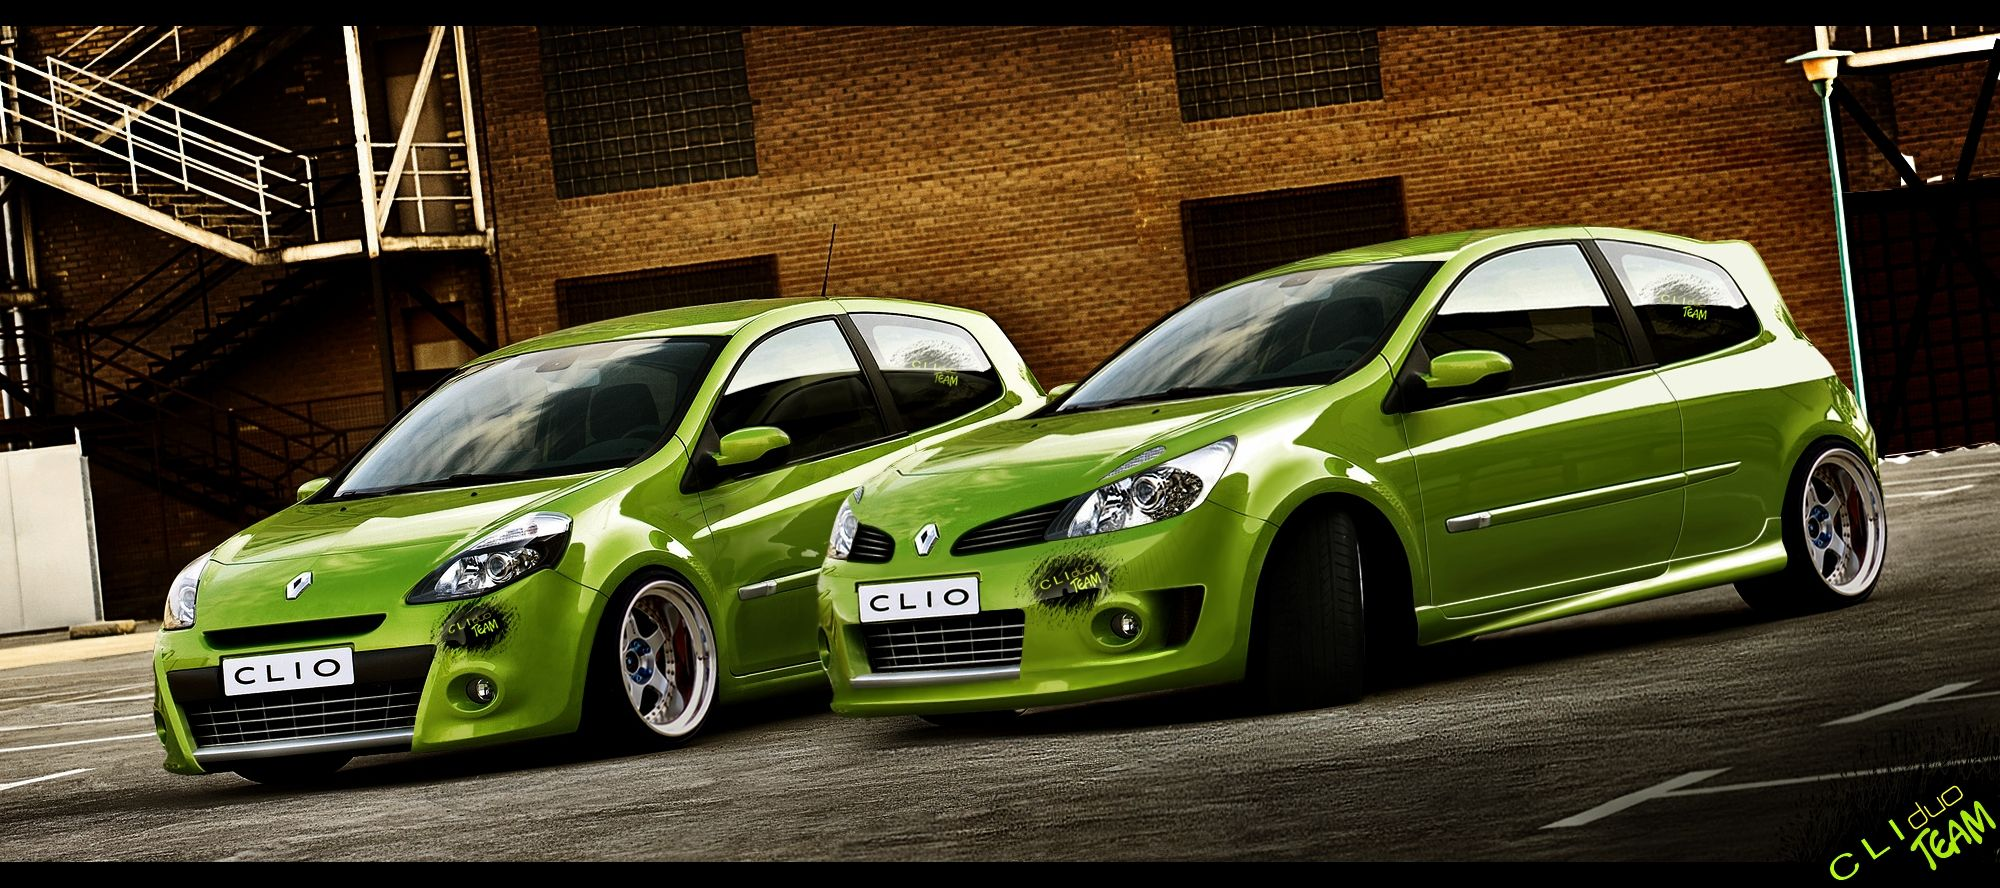 clio 3 tuning vert pomme tuning misterauto piecesauto green pinterest cars. Black Bedroom Furniture Sets. Home Design Ideas